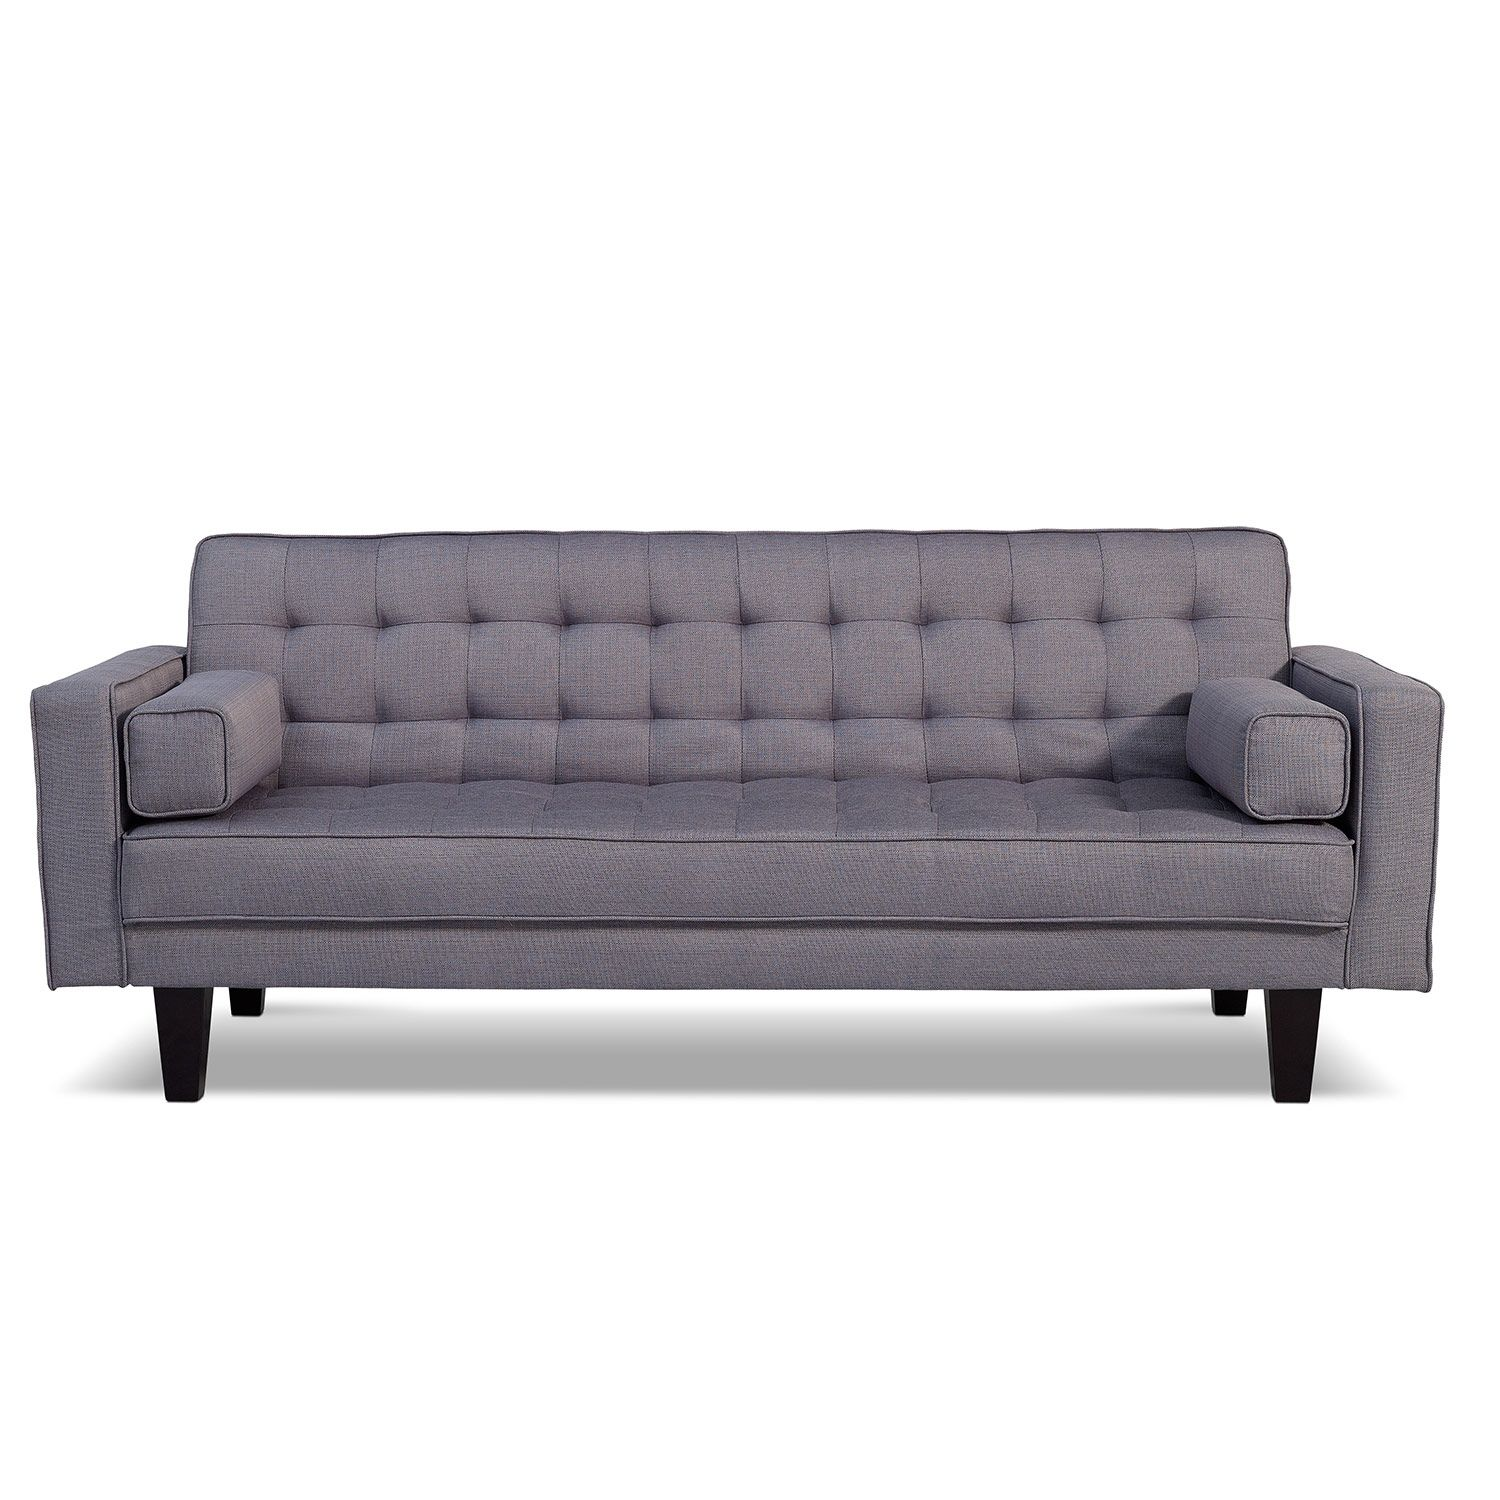 Bianca Futon Sofa Bed Review Big L Value City Does Have It In Gray